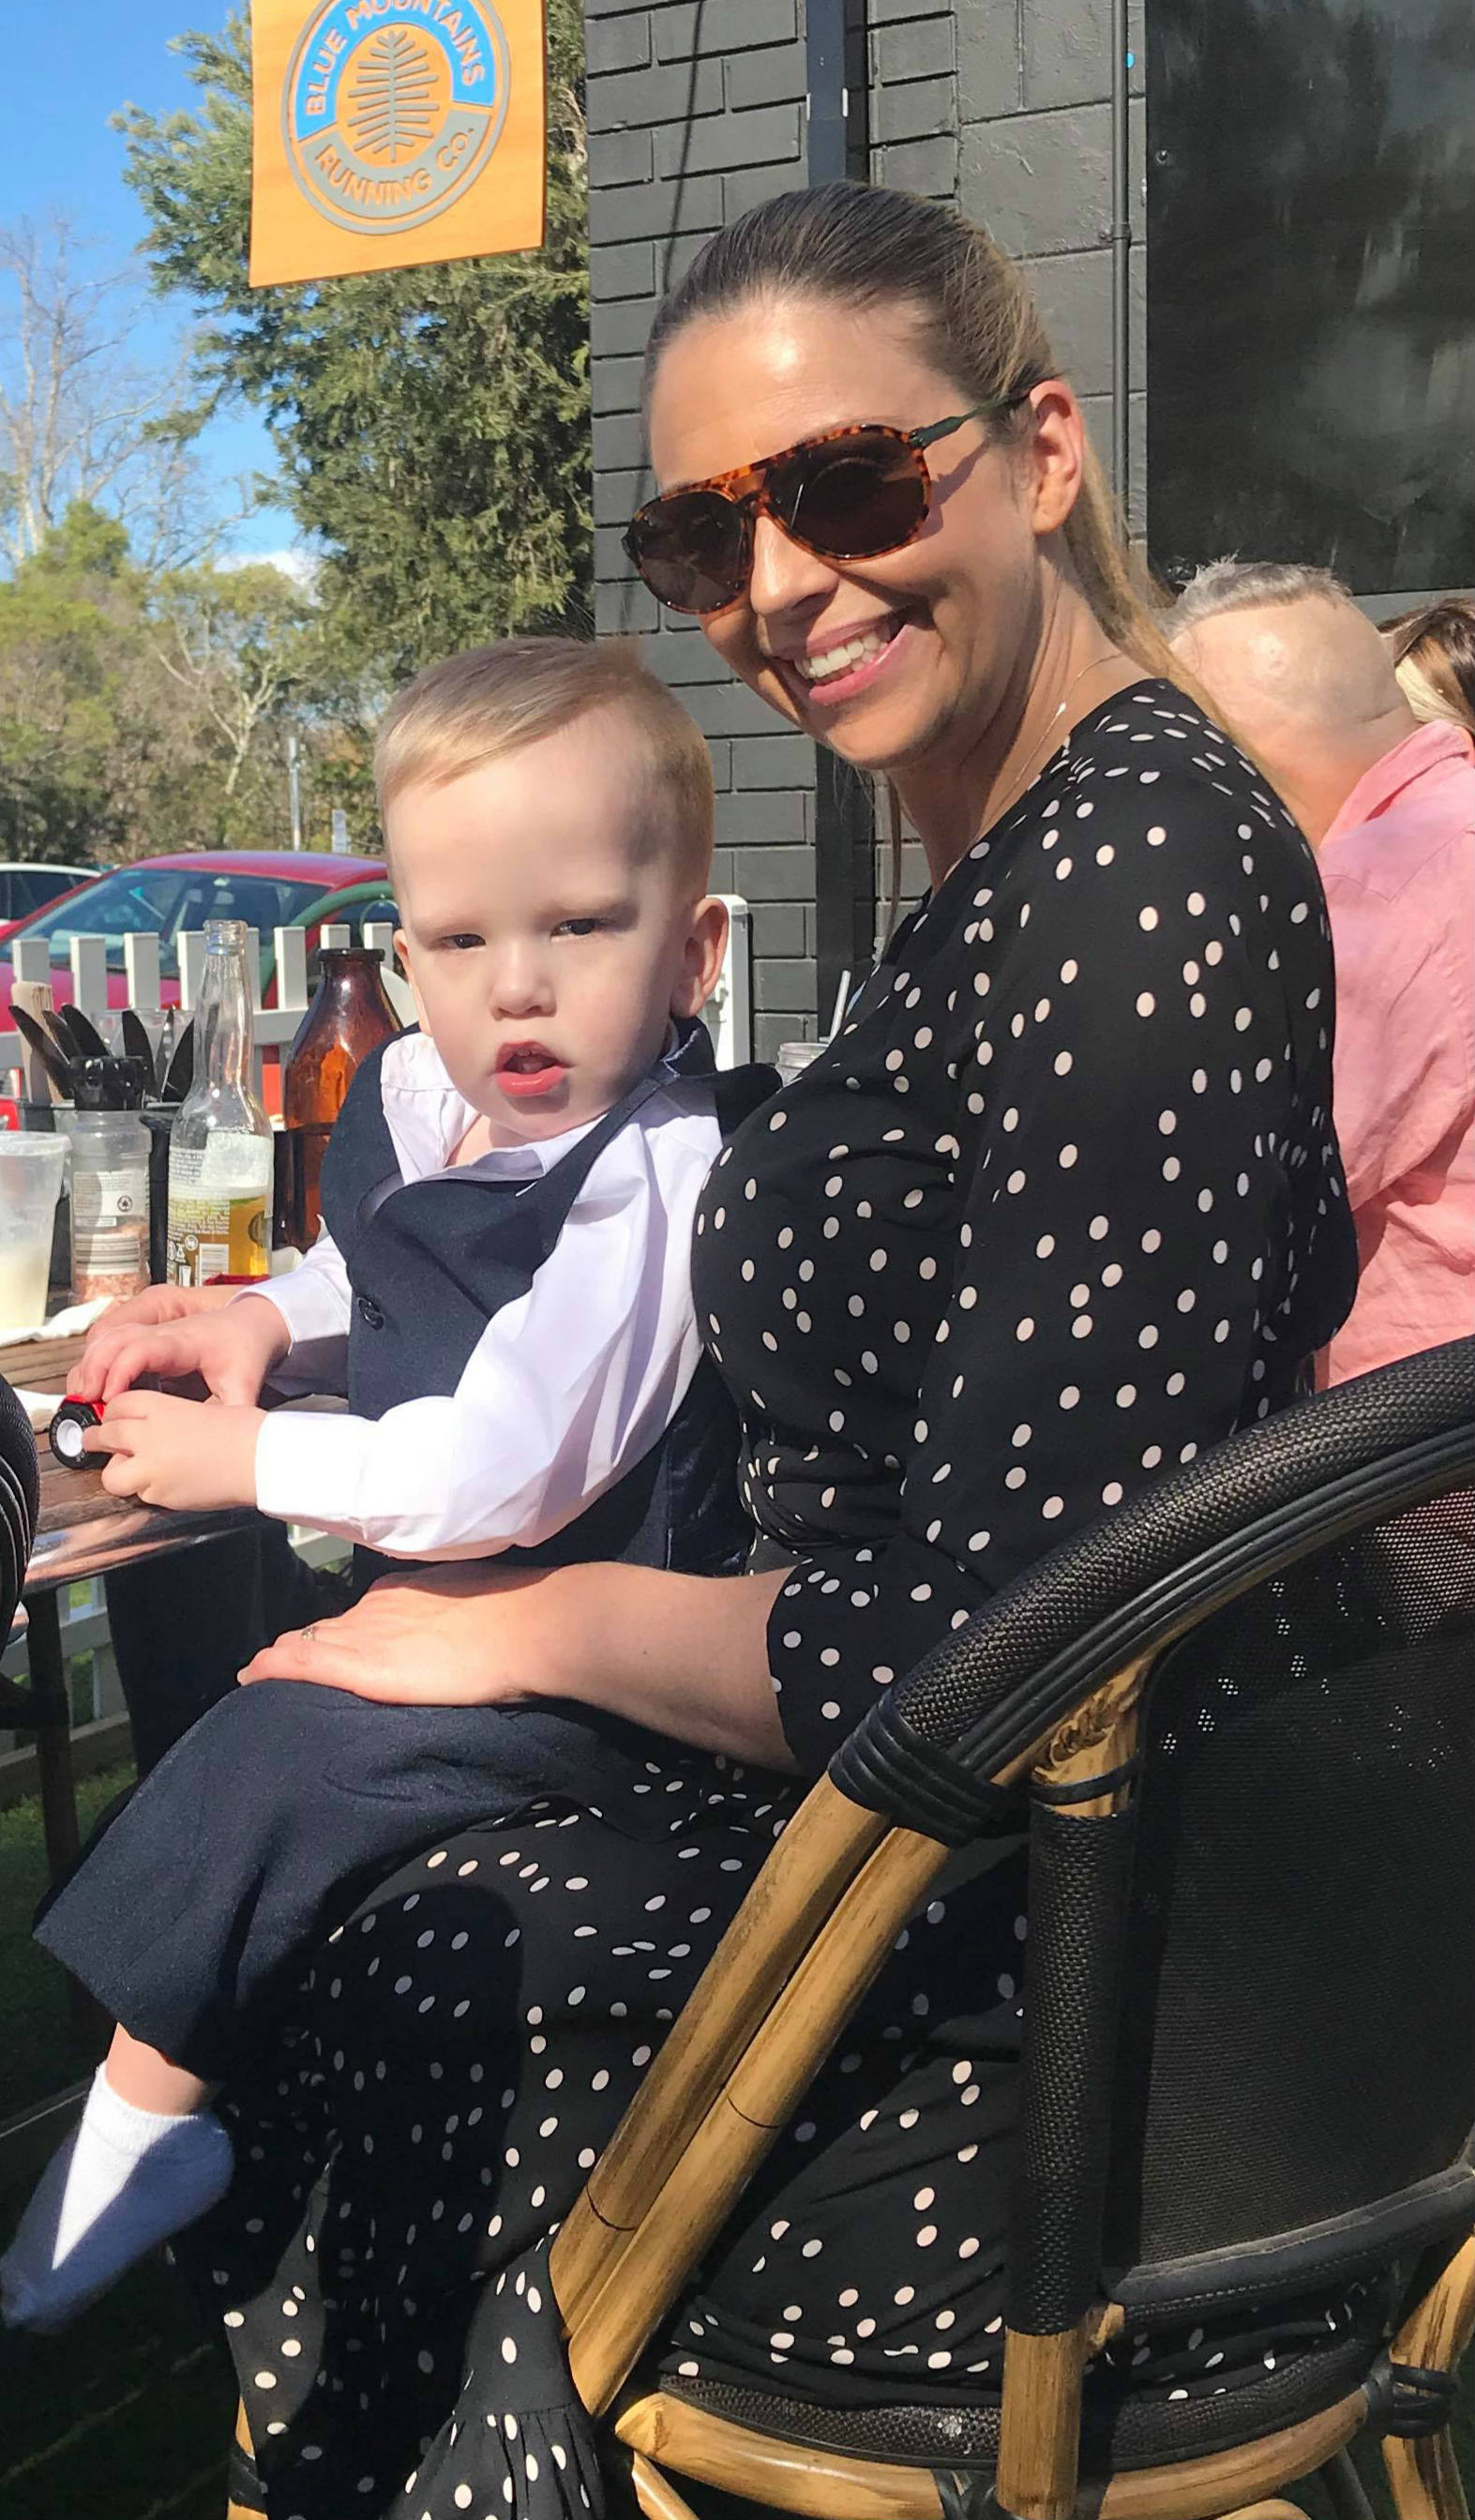 boy toddler sits on his mum's lap at an outdoor cafe